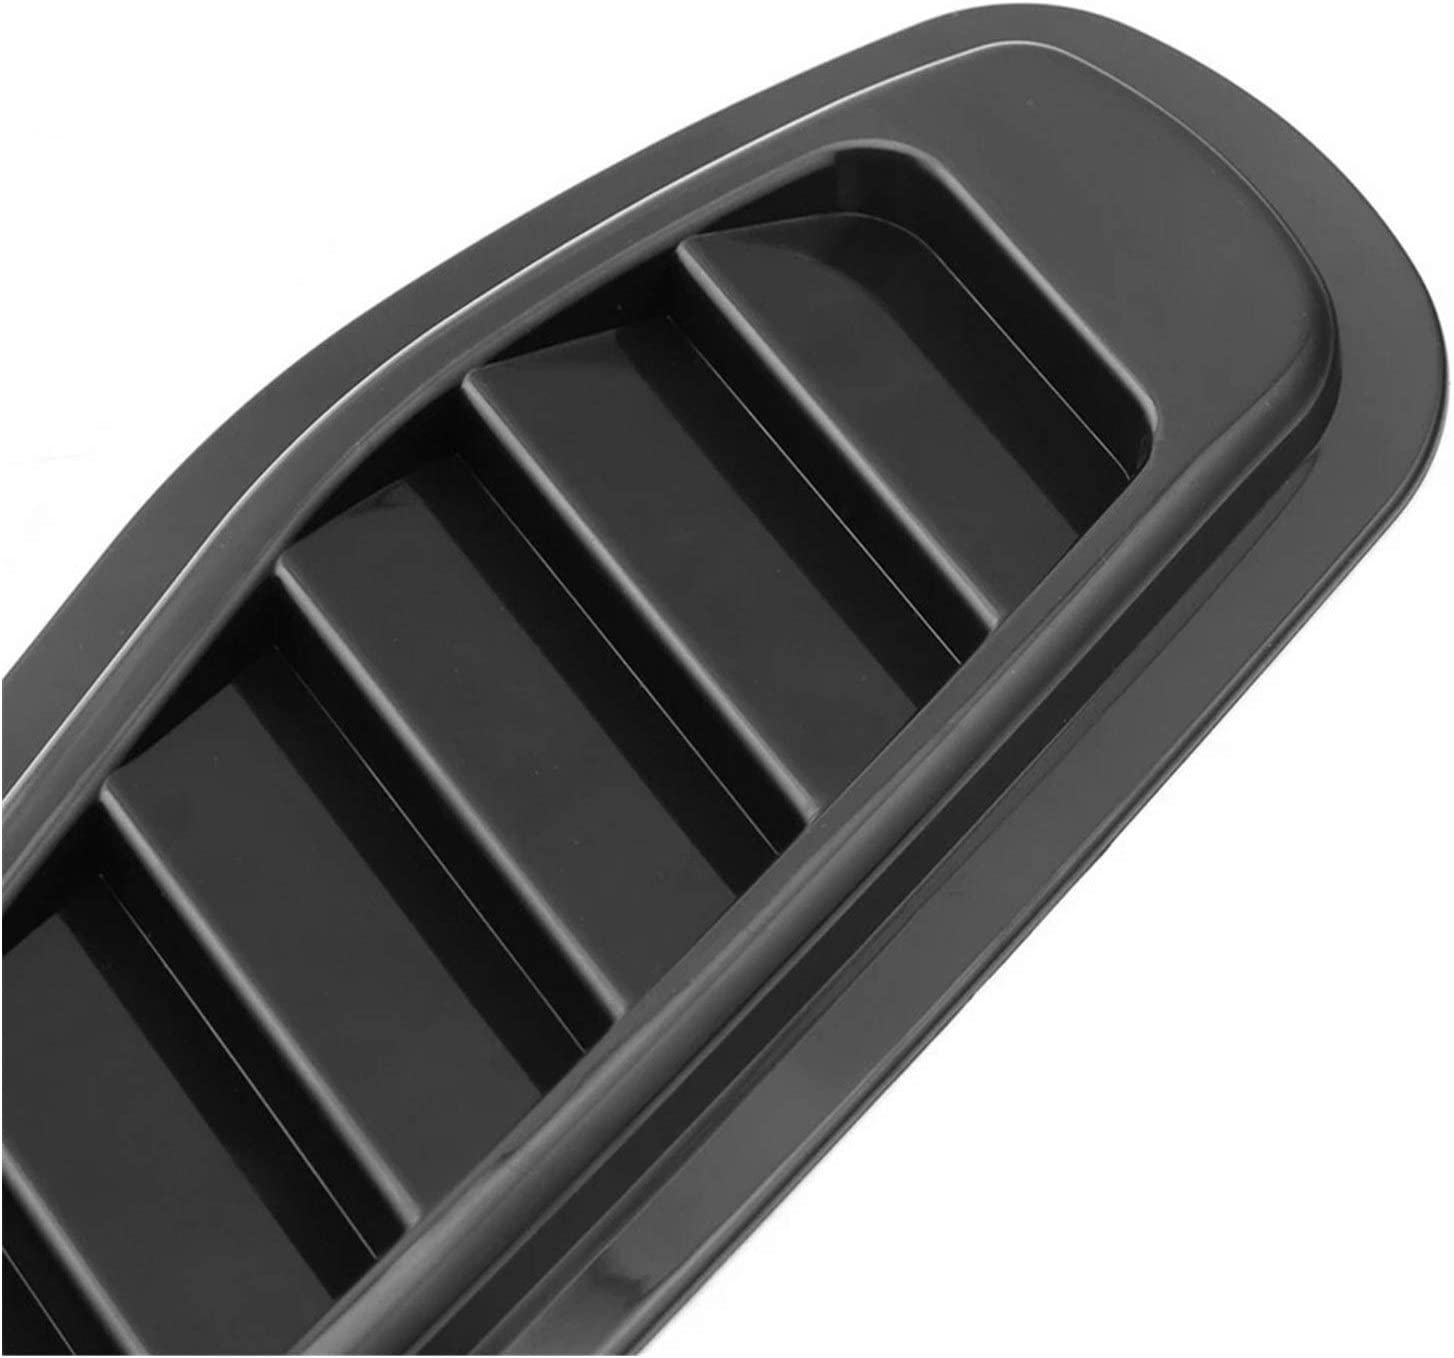 Color Name : Bright Black WSNDY Universal Car Carbon Fiber Look ABS Styling Sticker Decorative 2pcs Air Flow Intake Bonnet Vent Cover Hood Air Flow Fender Vent Cover Intake Grille